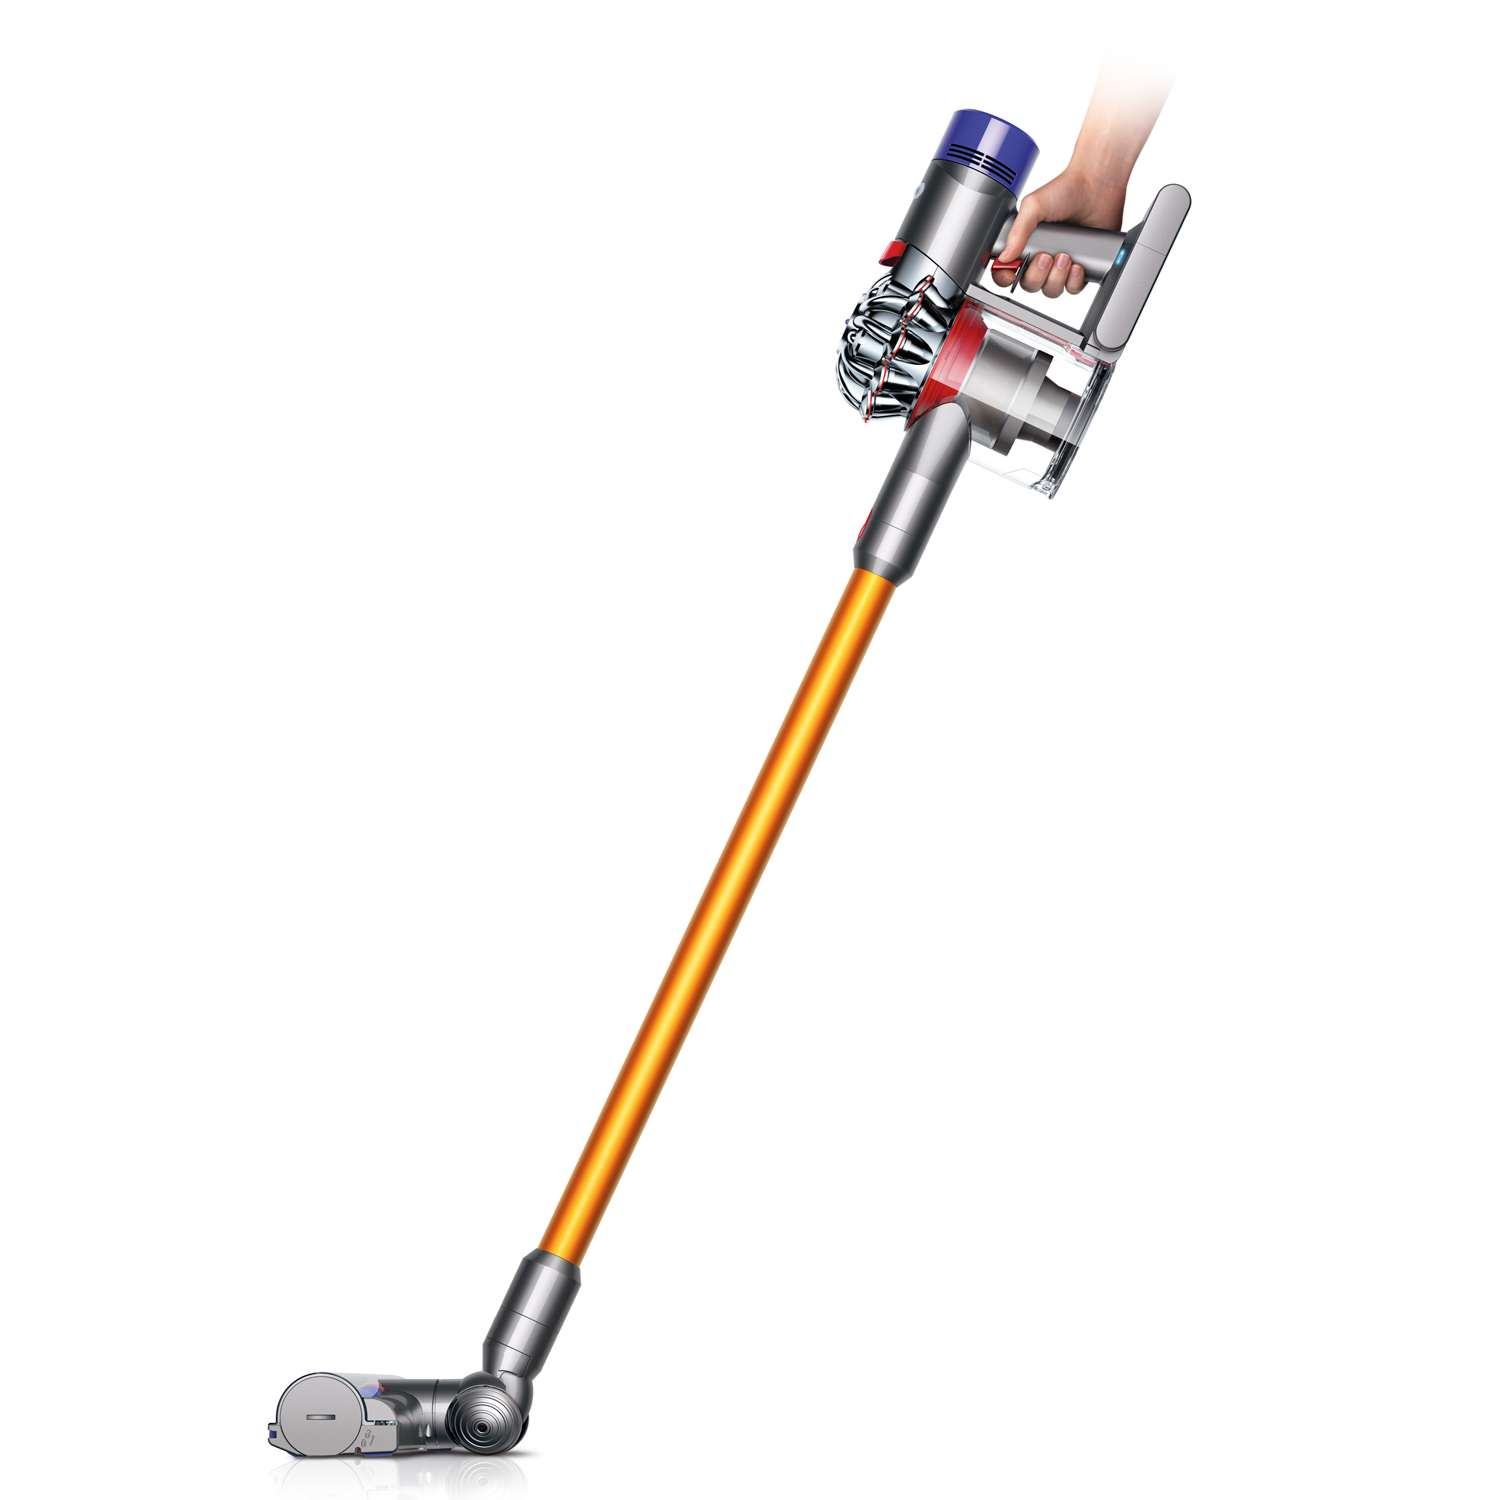 dyson v8 absolute cordless rechargeable vacuum cleaner in silver new ebay. Black Bedroom Furniture Sets. Home Design Ideas